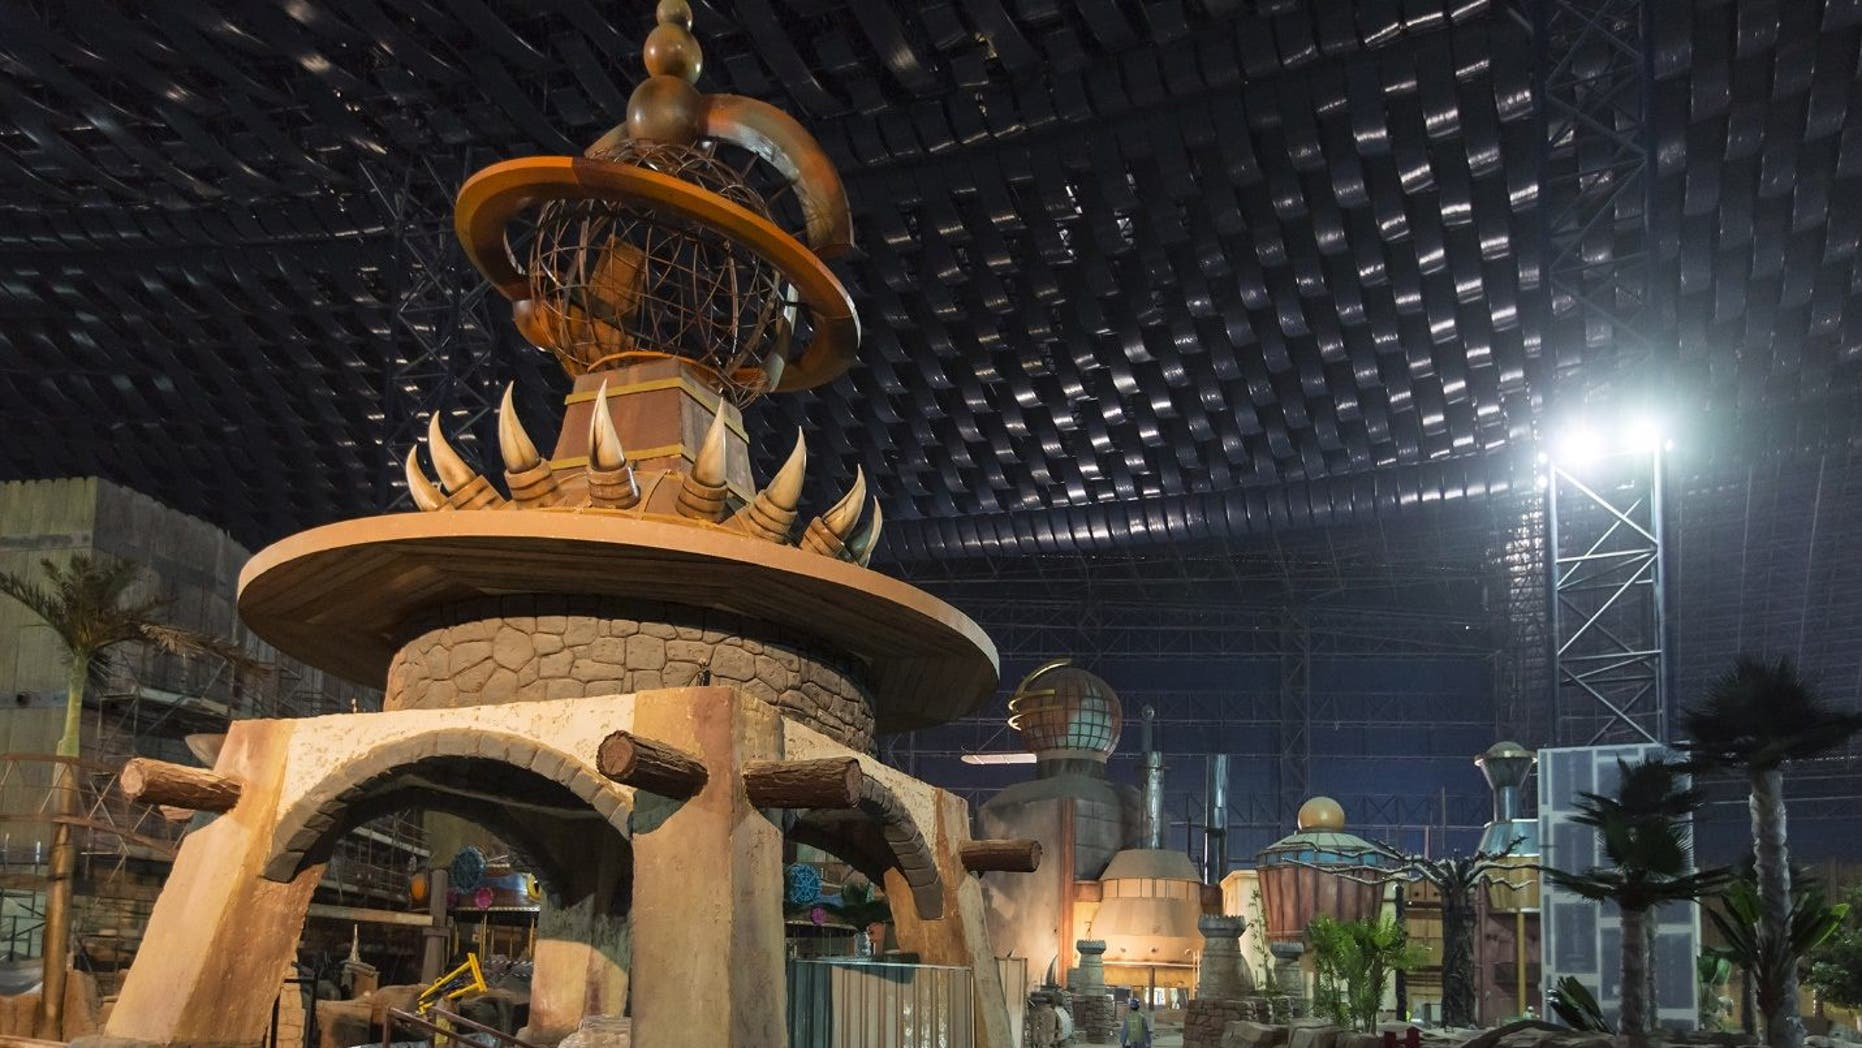 There are 70 life sized prehistoric beasts in the Dinosaur Zone-- one of four themed zones at the world's largest indoor theme park.